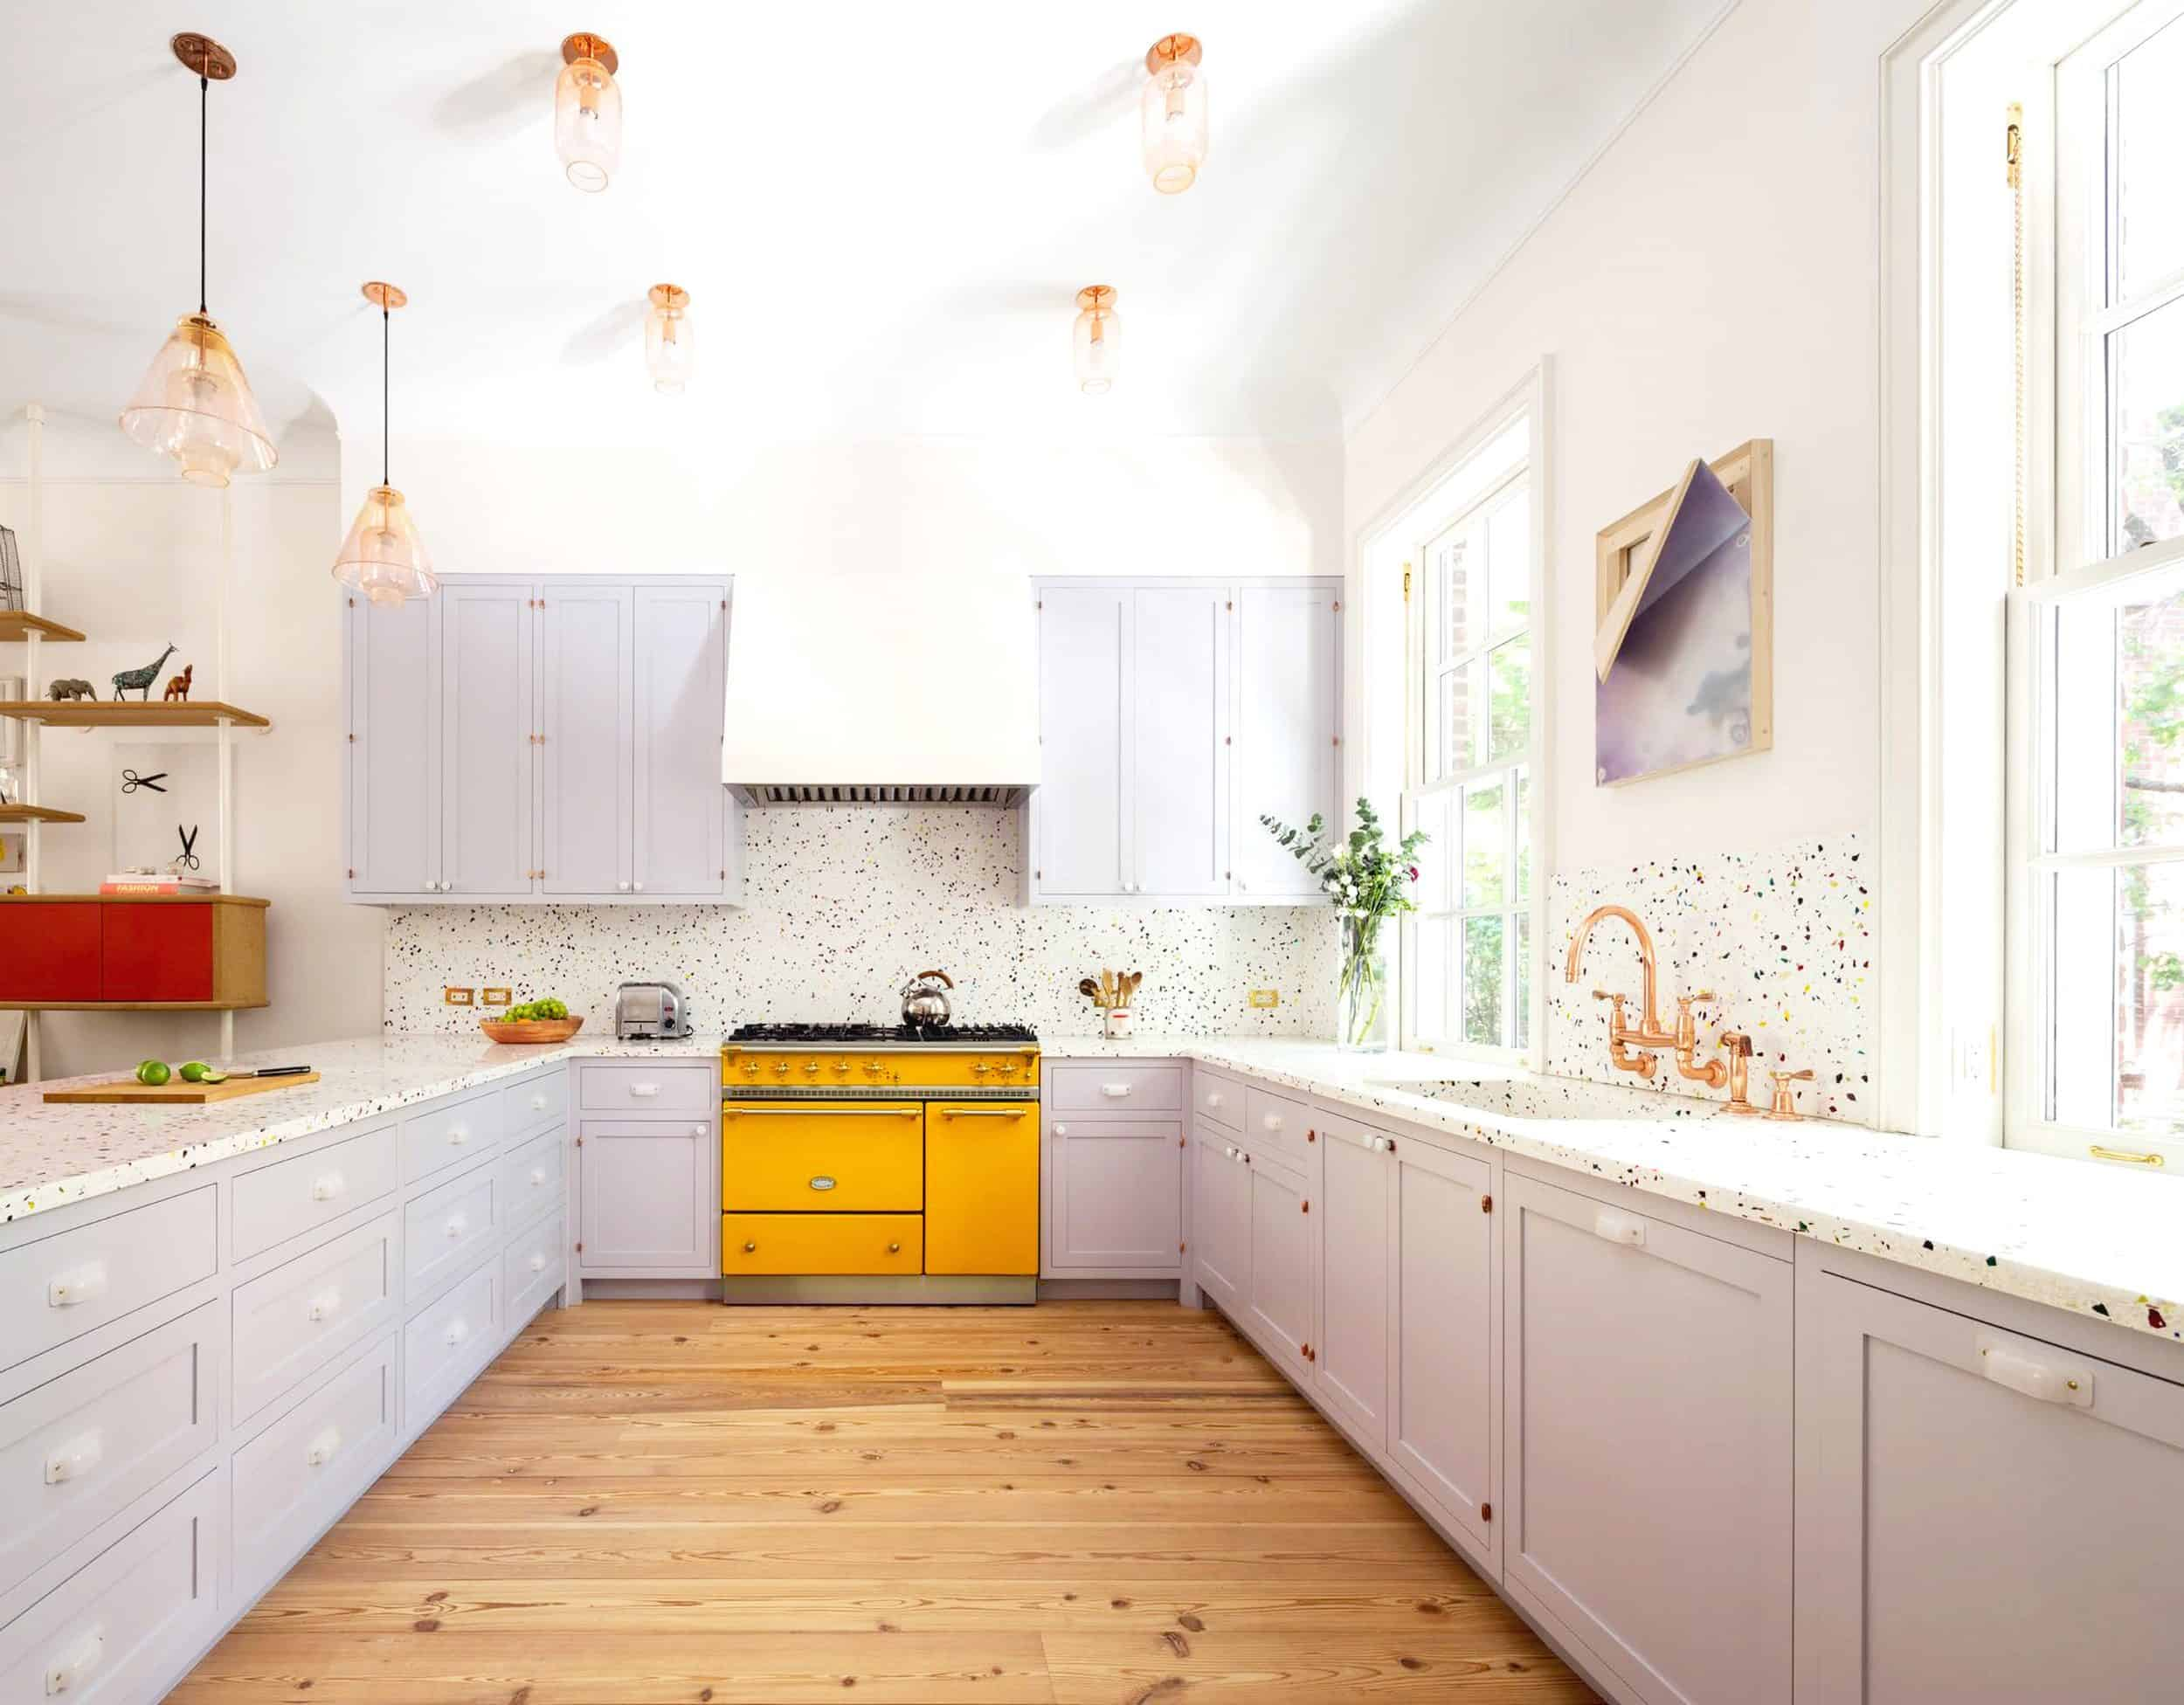 22 A Lilac Kitchen Accented With A Bright Yellow Cooker And A Polka Dot Backsplash Plus Brass Lamps